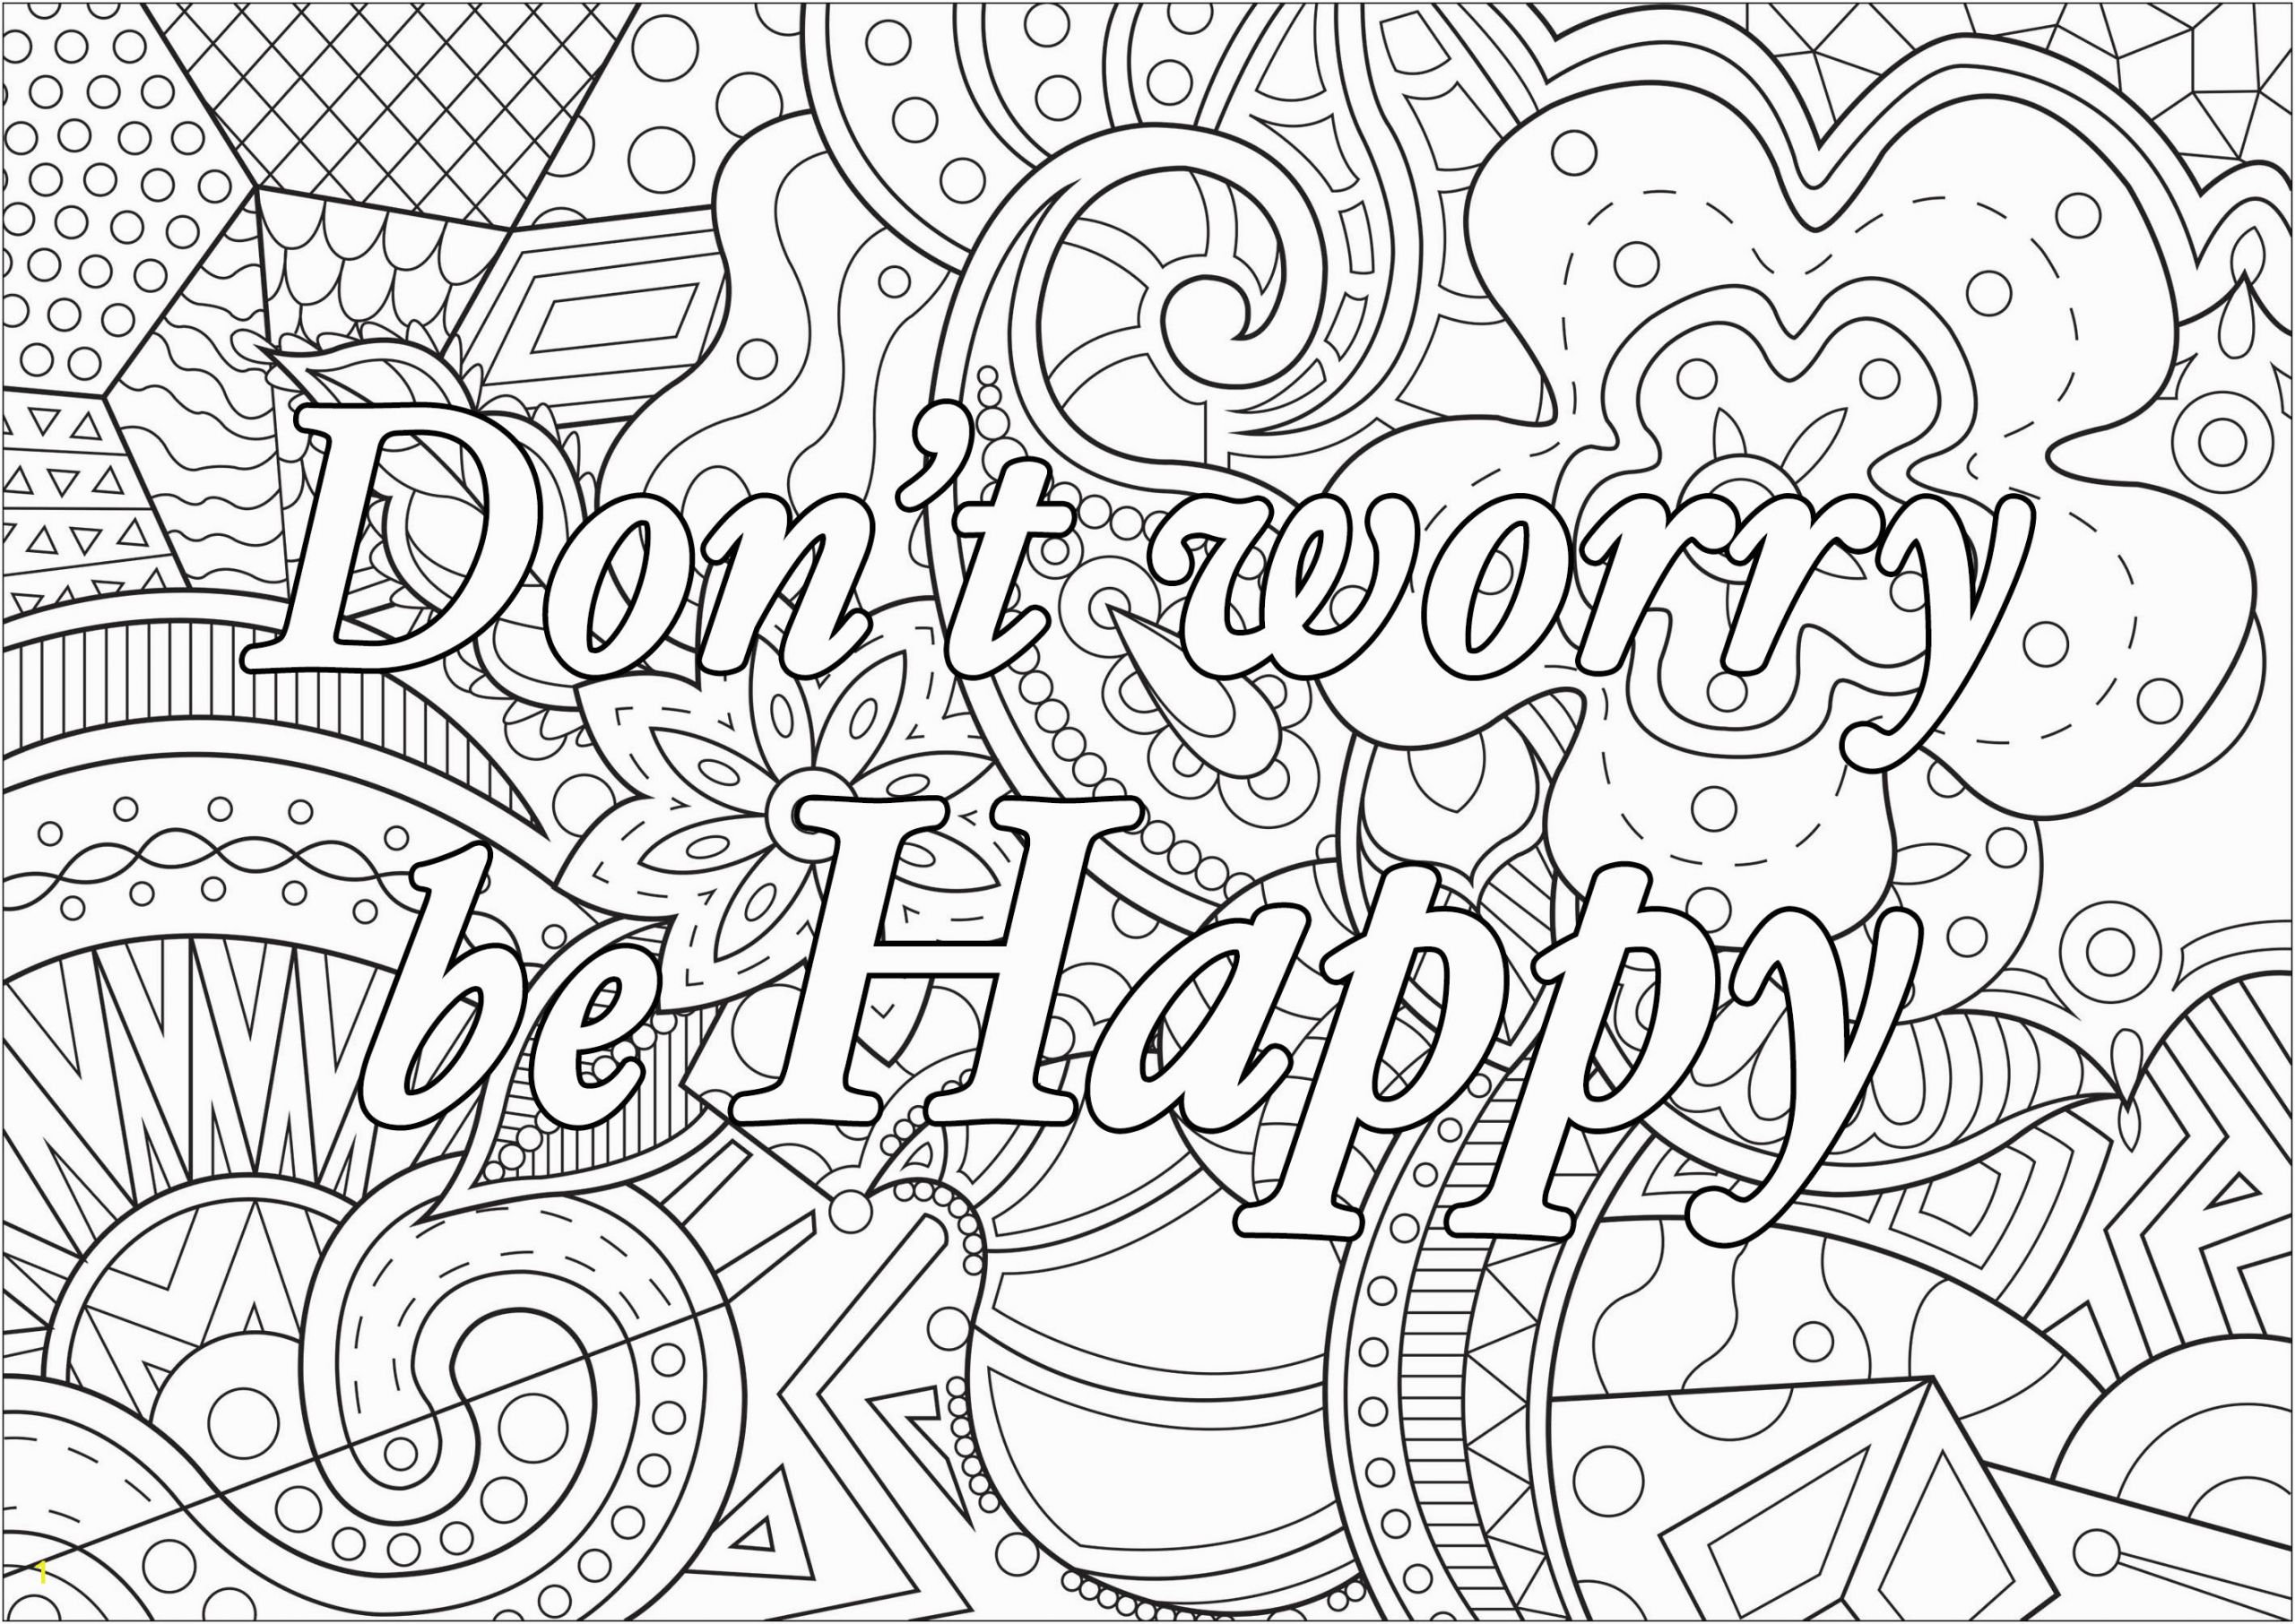 Free Printable Coloring Pages for Adults Inspirational Quotes Don T Worry Be Happy Positive & Inspiring Quotes Adult